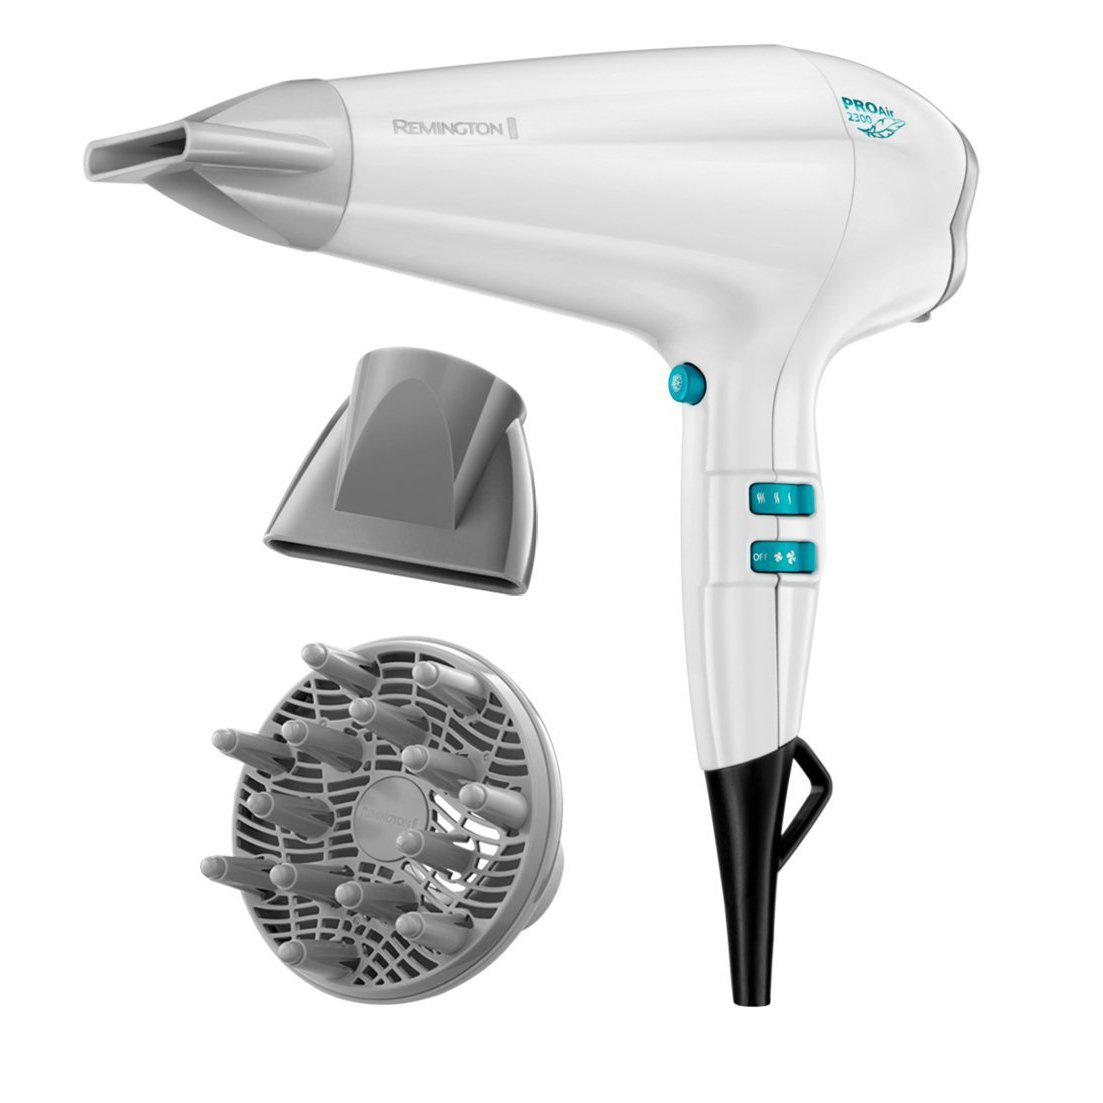 Remington AC6330 Hair Dryer - Remington - Pazarska